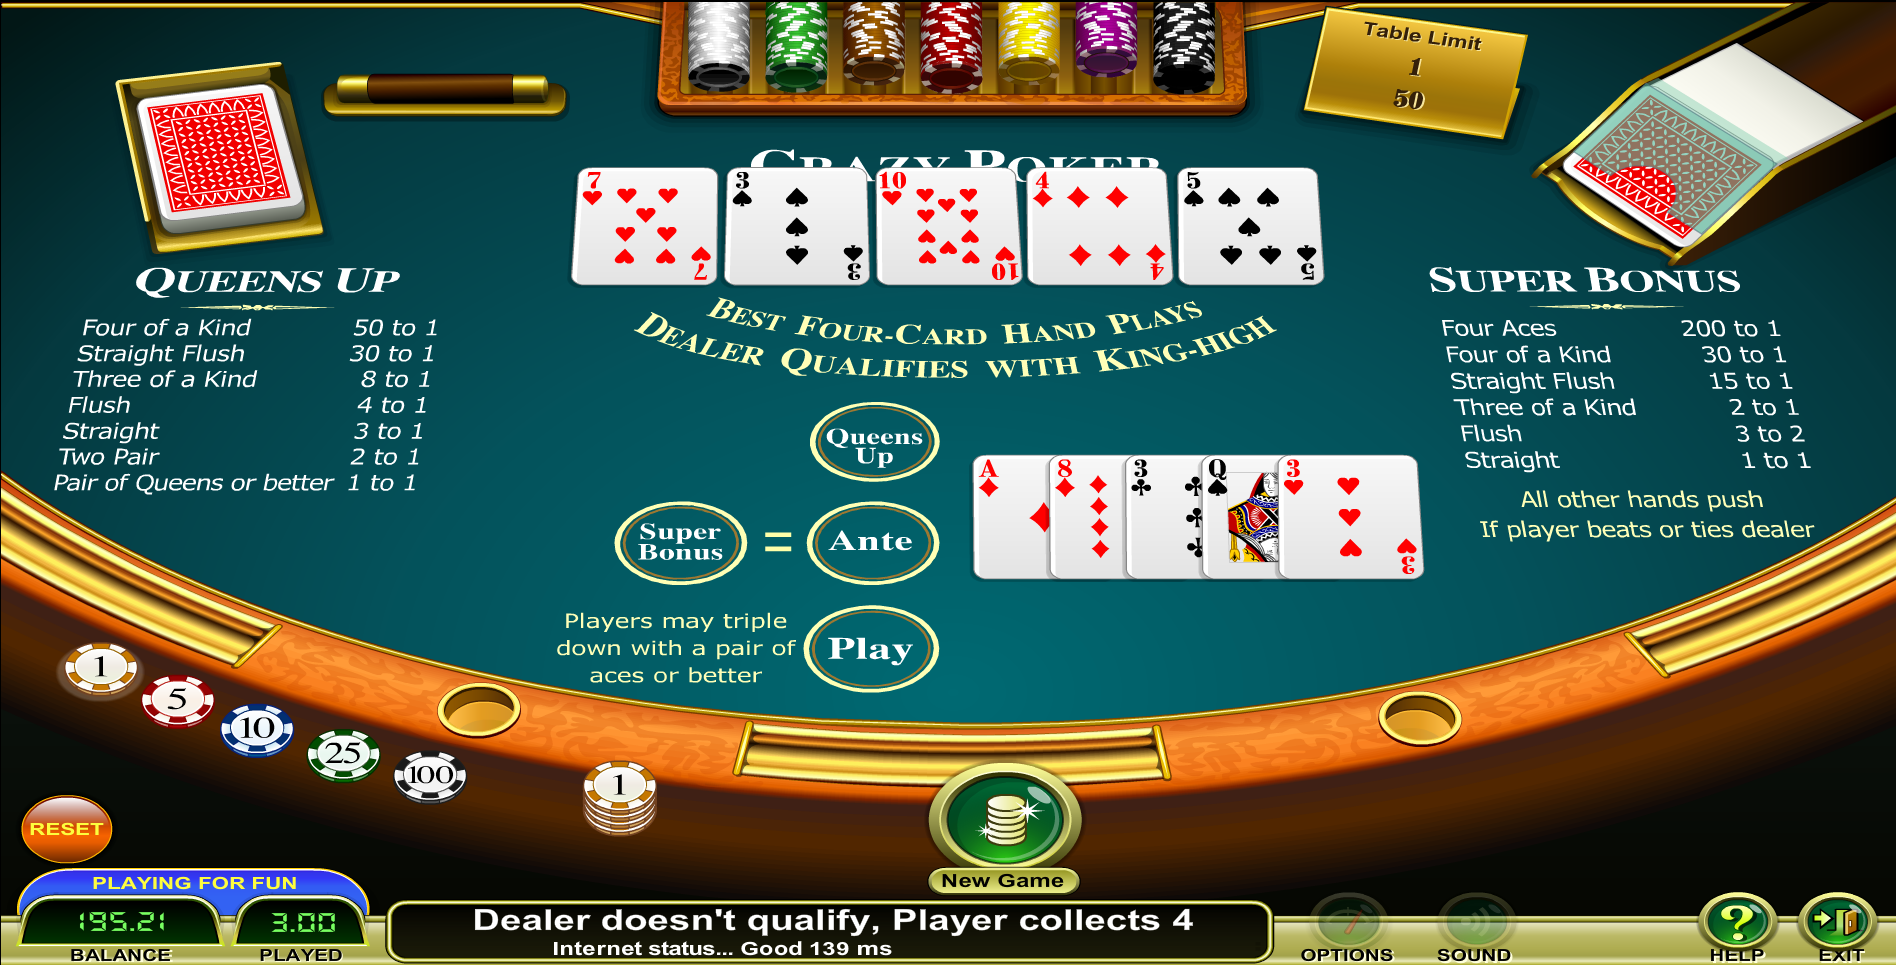 Crazy 4 poker las vegas casinos 888 casino information